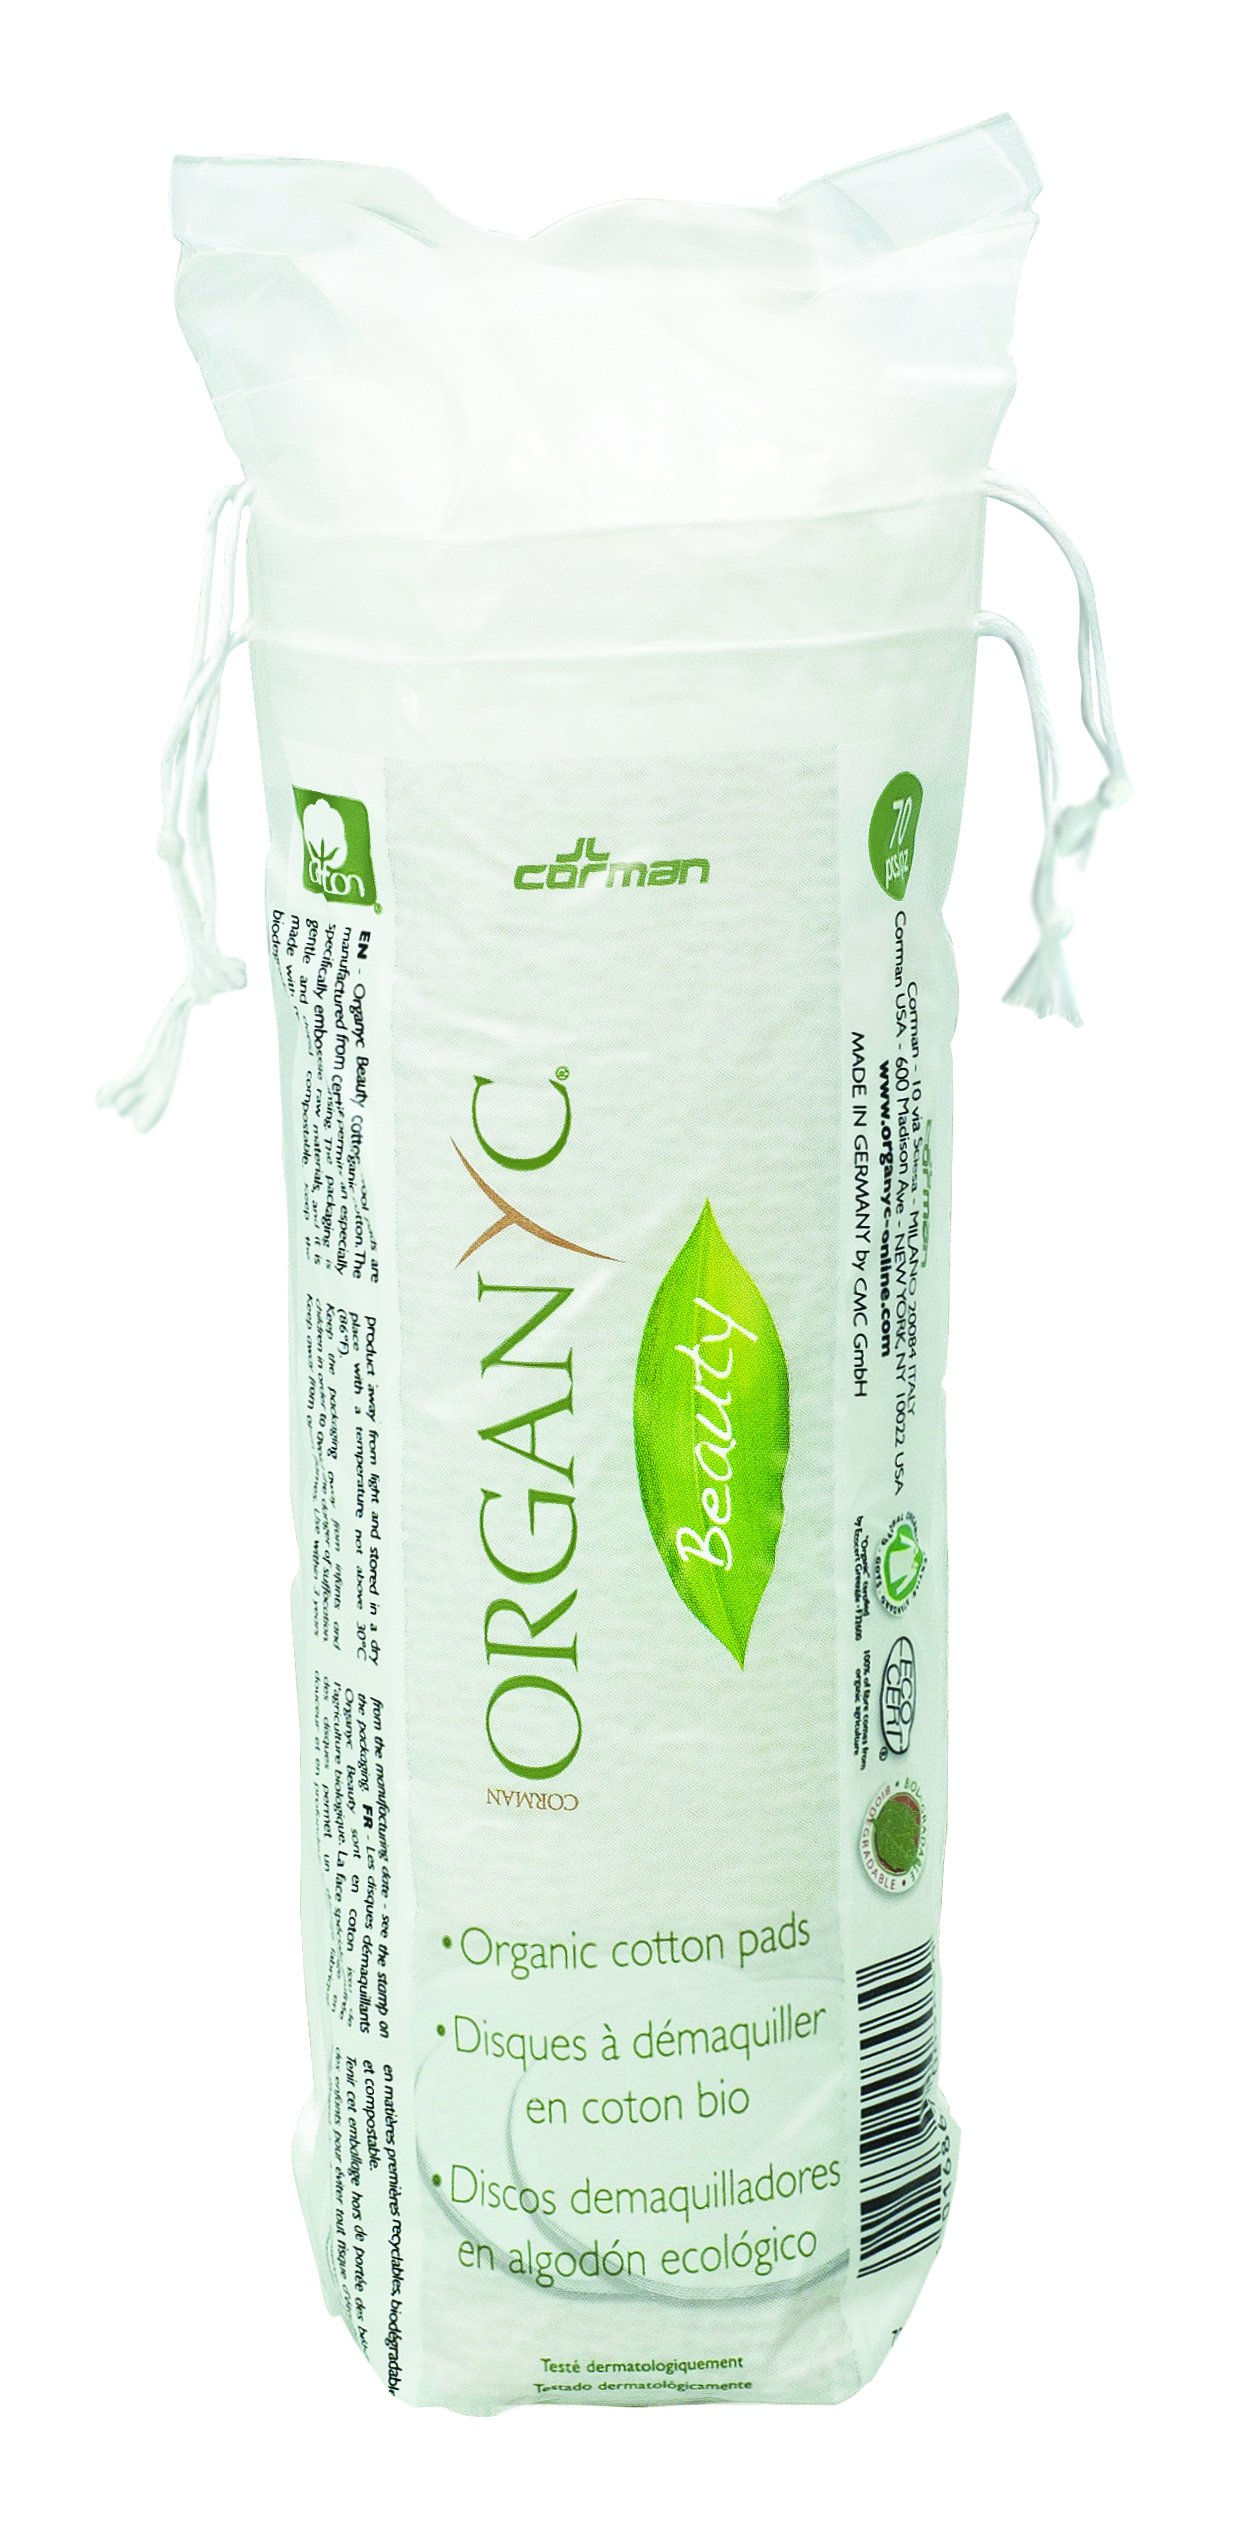 Organyc 100% Organic Cotton Rounds for Sensitive Skin, 70 count